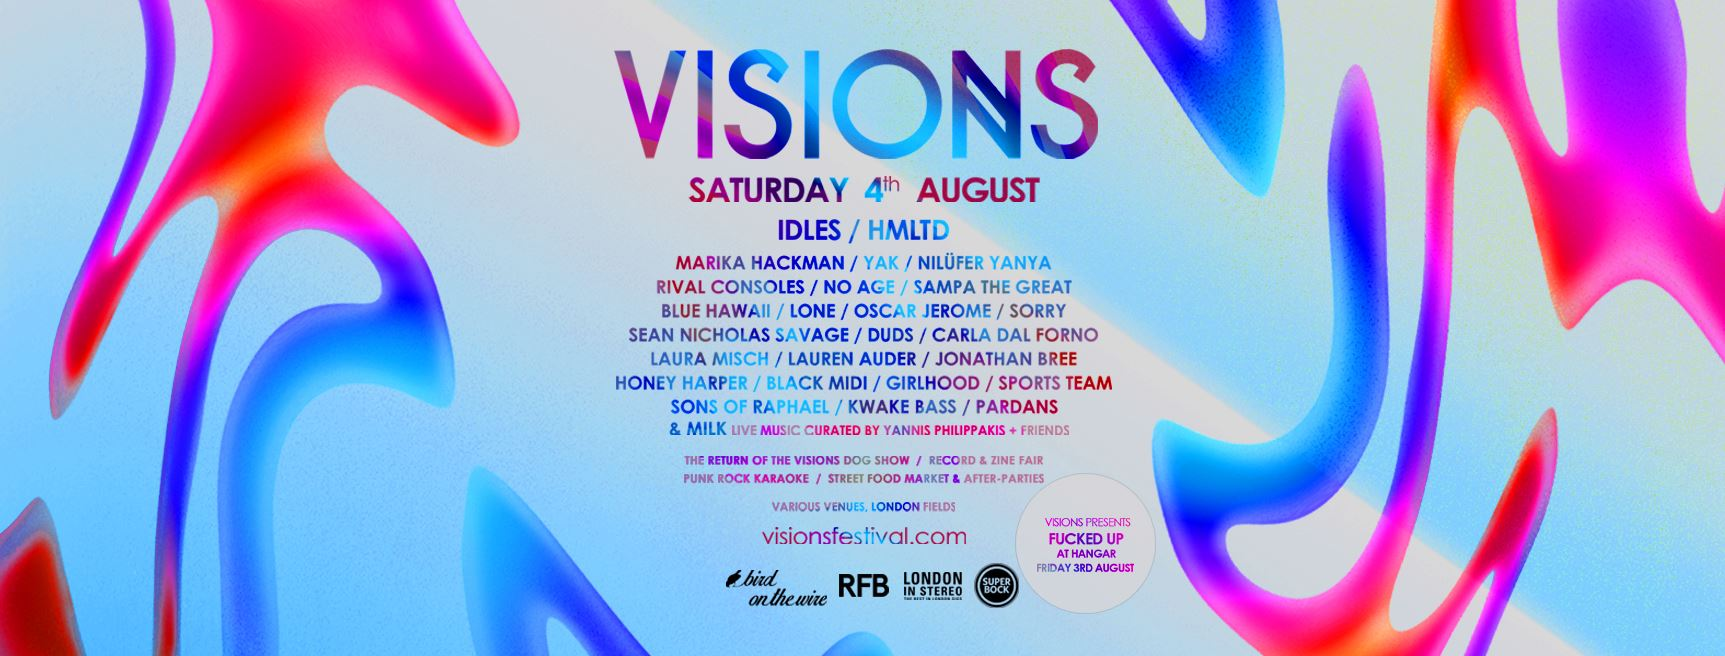 Amazing Radio | News | Preview: Visions Festival – The Highlights